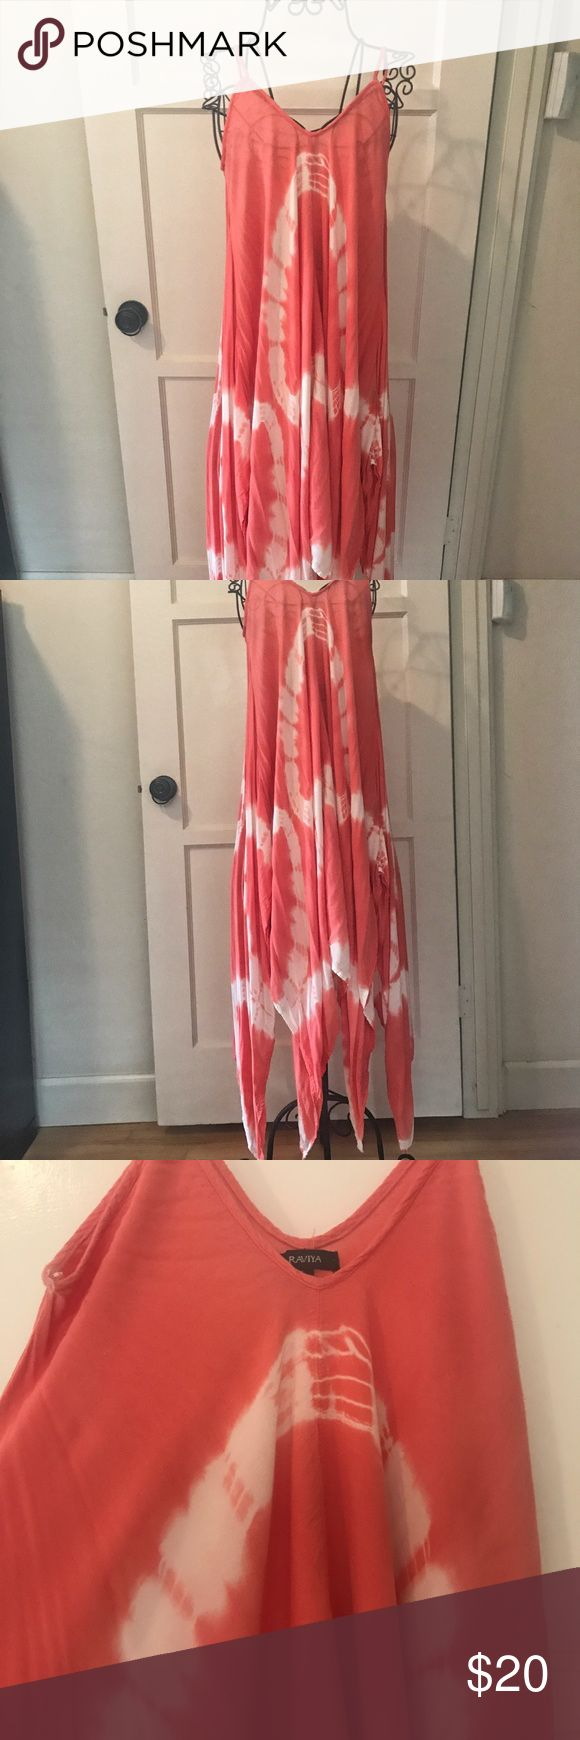 Macy's coral and cream trapeze  dress This dress is great for a beach cover up or a summer day at a BBQ. The color is coral and cream tie-dye Dresses Maxi